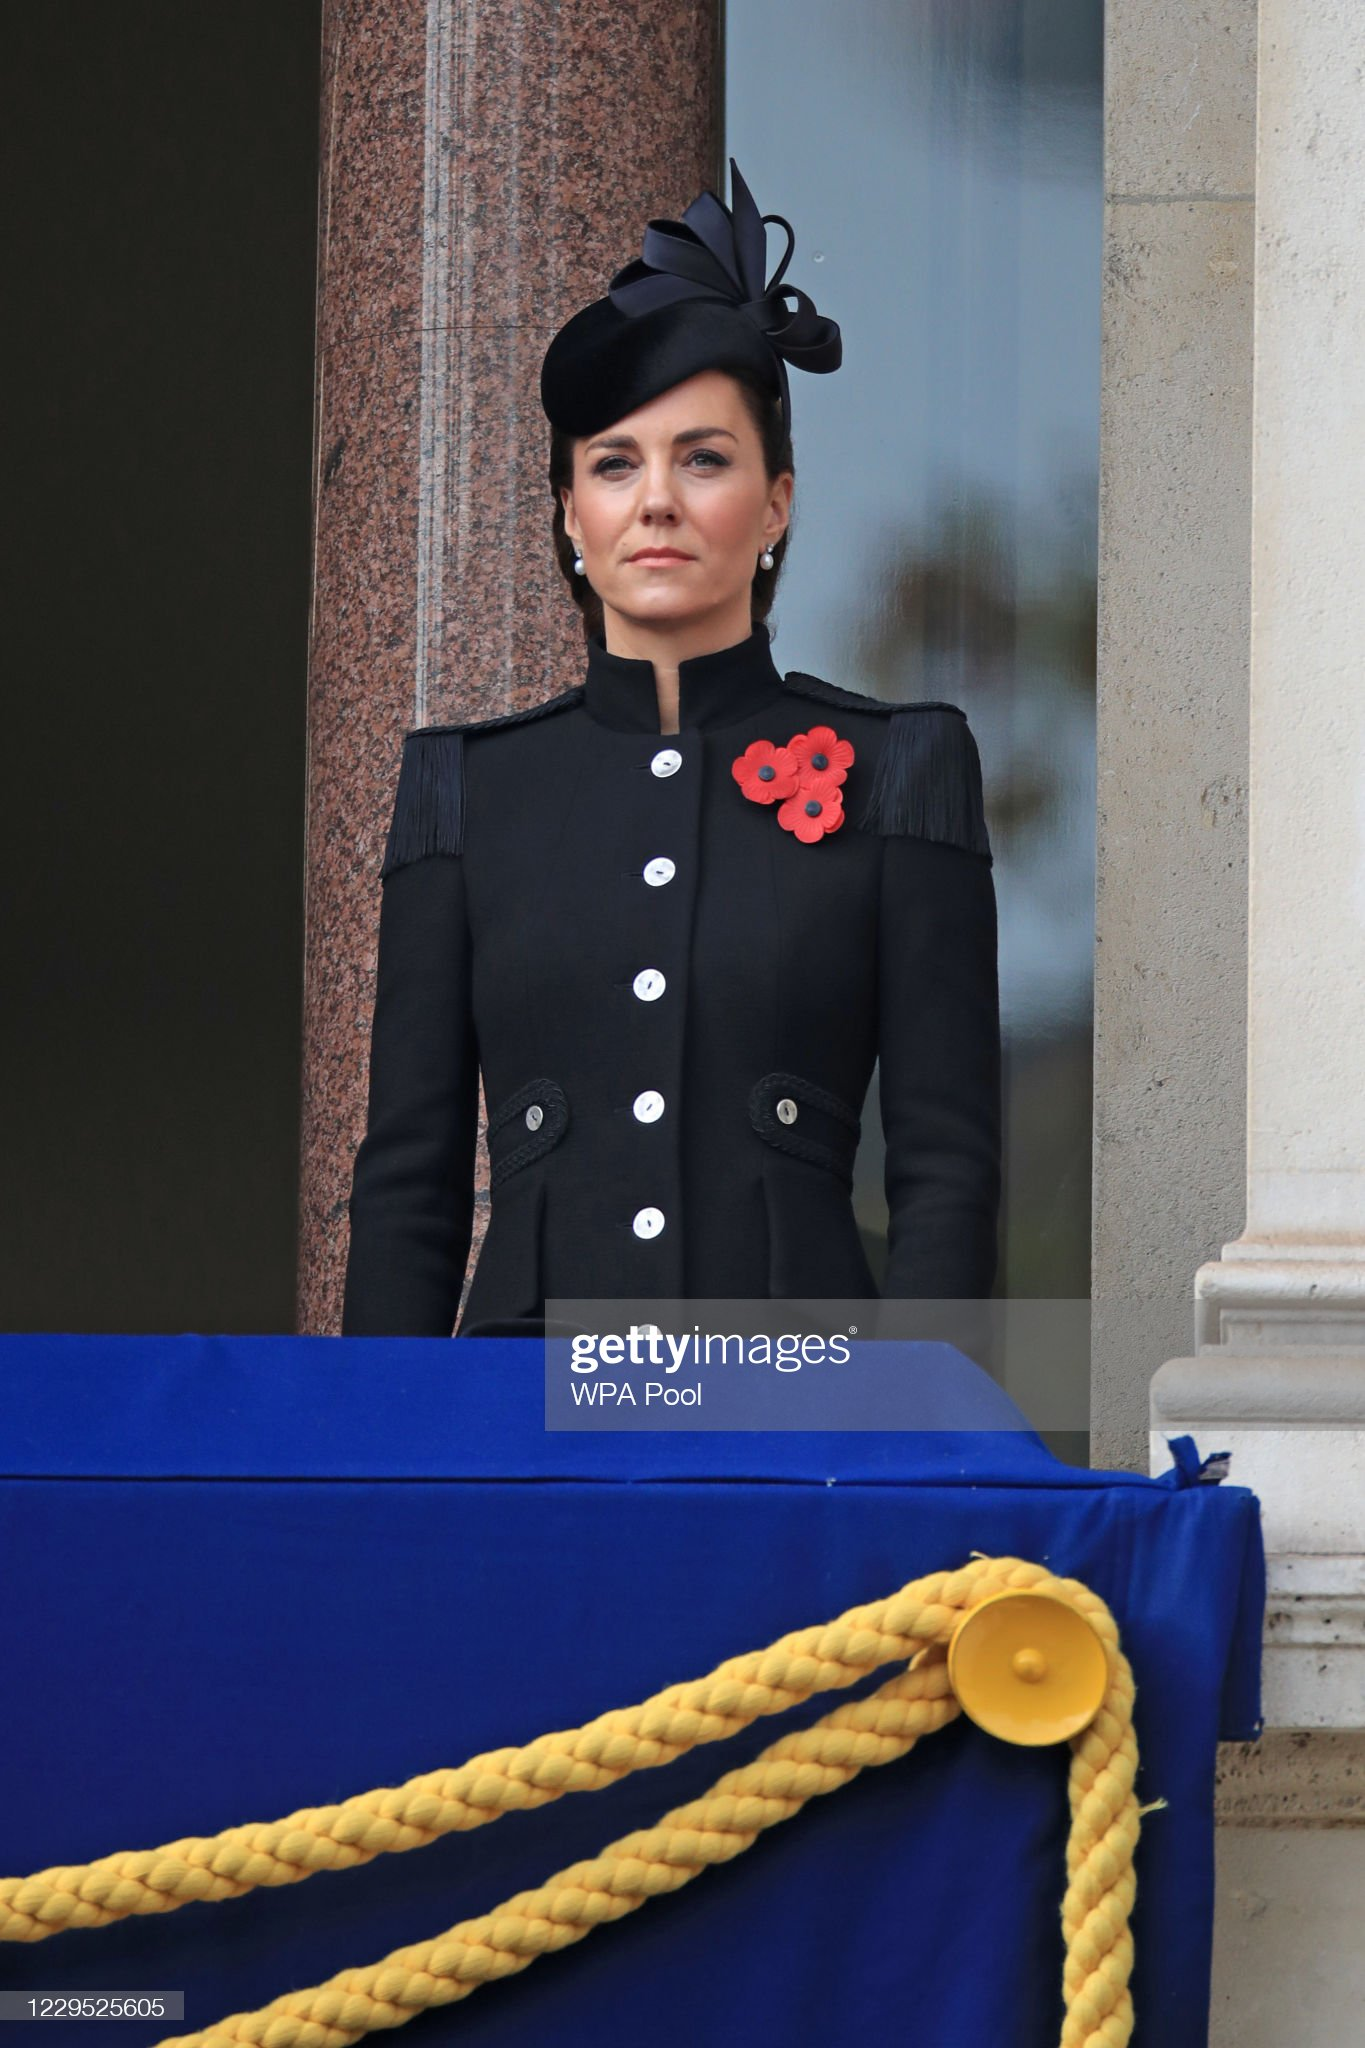 https://media.gettyimages.com/photos/britains-catherine-duchess-of-cambridge-attends-a-national-service-of-picture-id1229525605?s=2048x2048